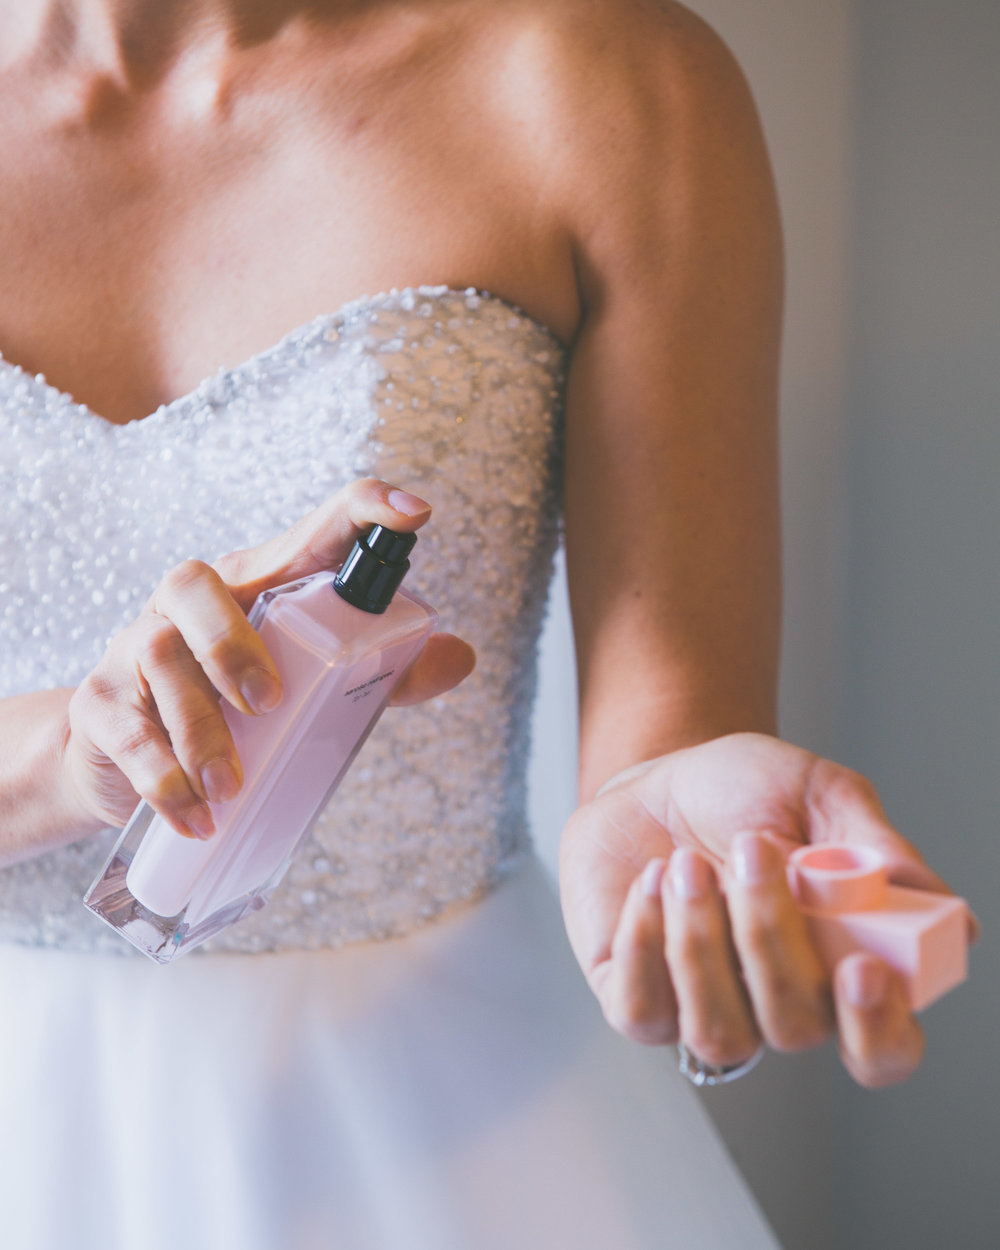 Spraying perfume - Weddings - Photo credit Nicola Bailey.jpg